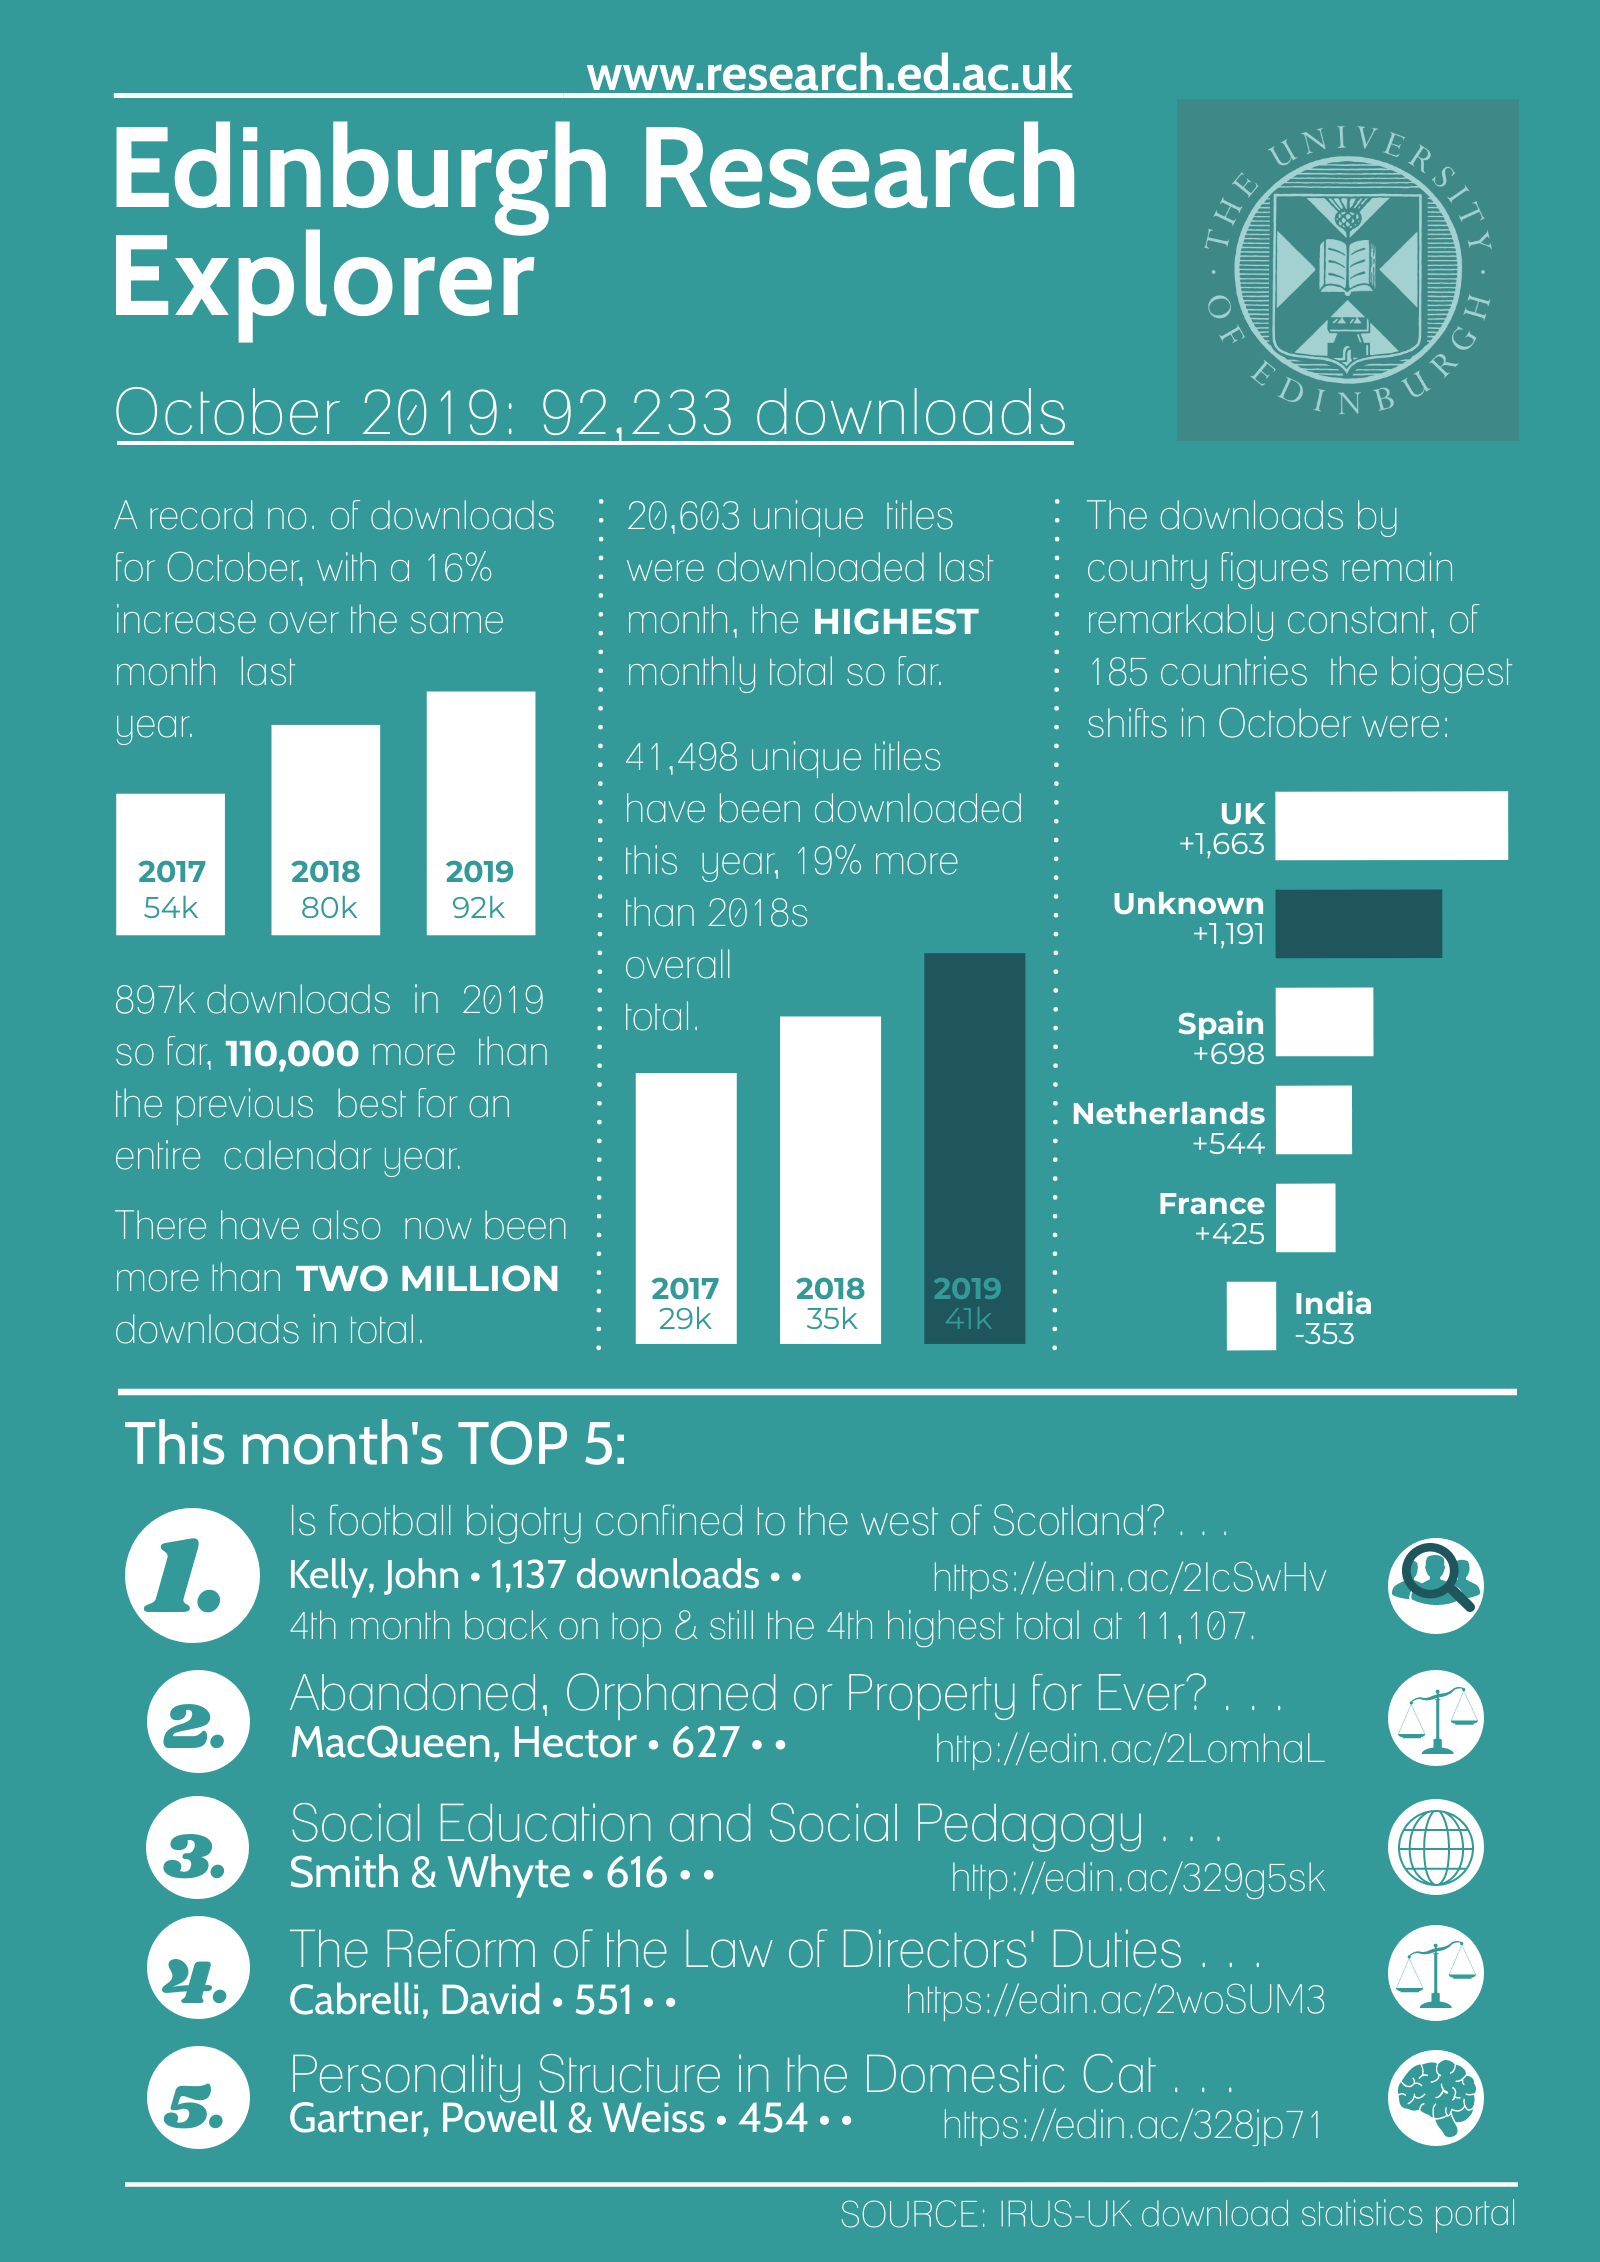 Edinburgh Research Explorer: October 2019 downloads infographic